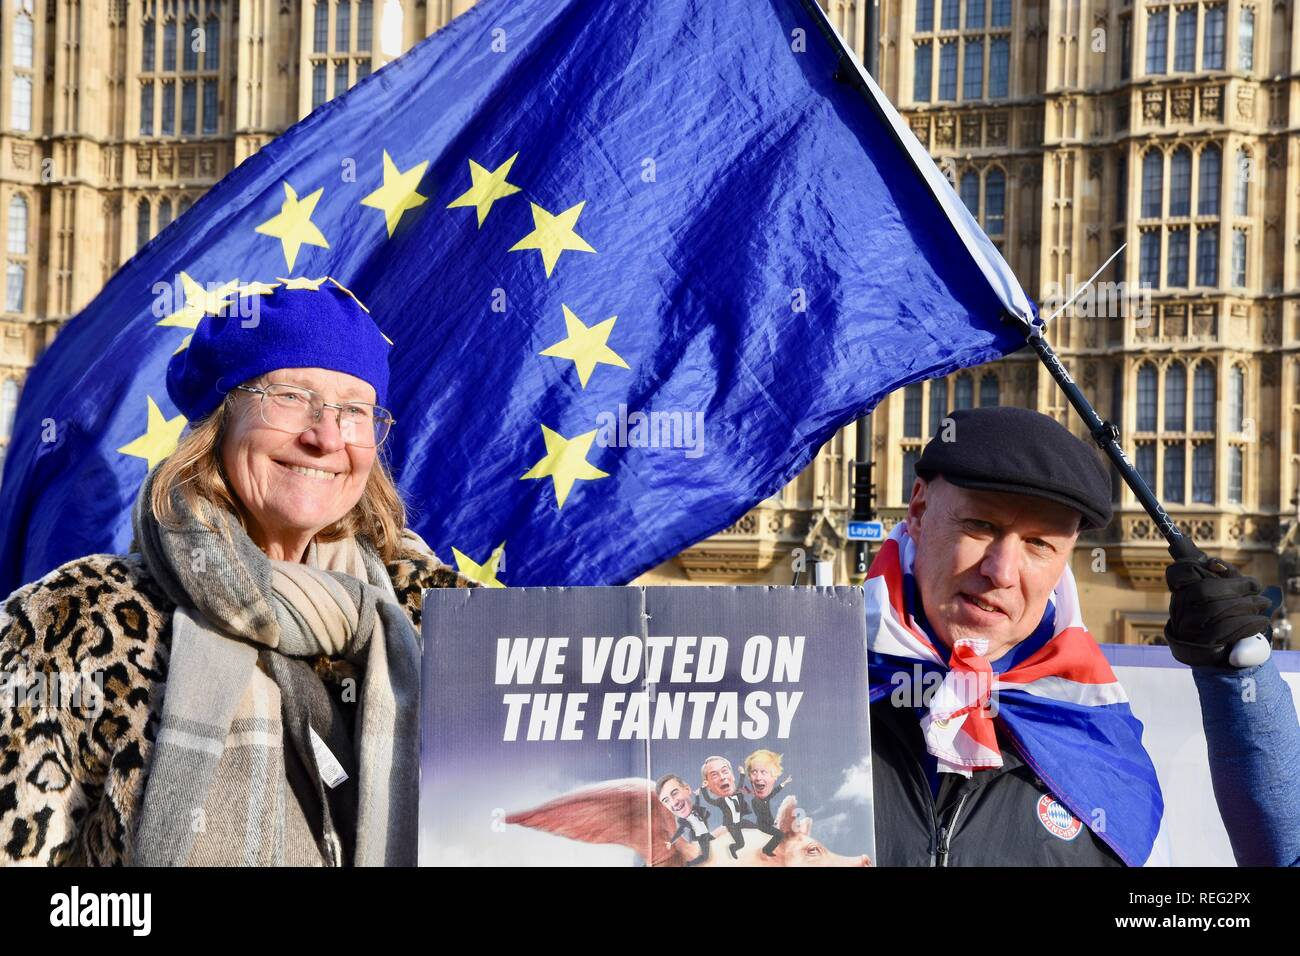 Anti Brexit Protest.Remainers continued their protest on the day that Theresa May revealed her Brexit Plan B.Houses of Parliament,Westminster,London.UK - Stock Image